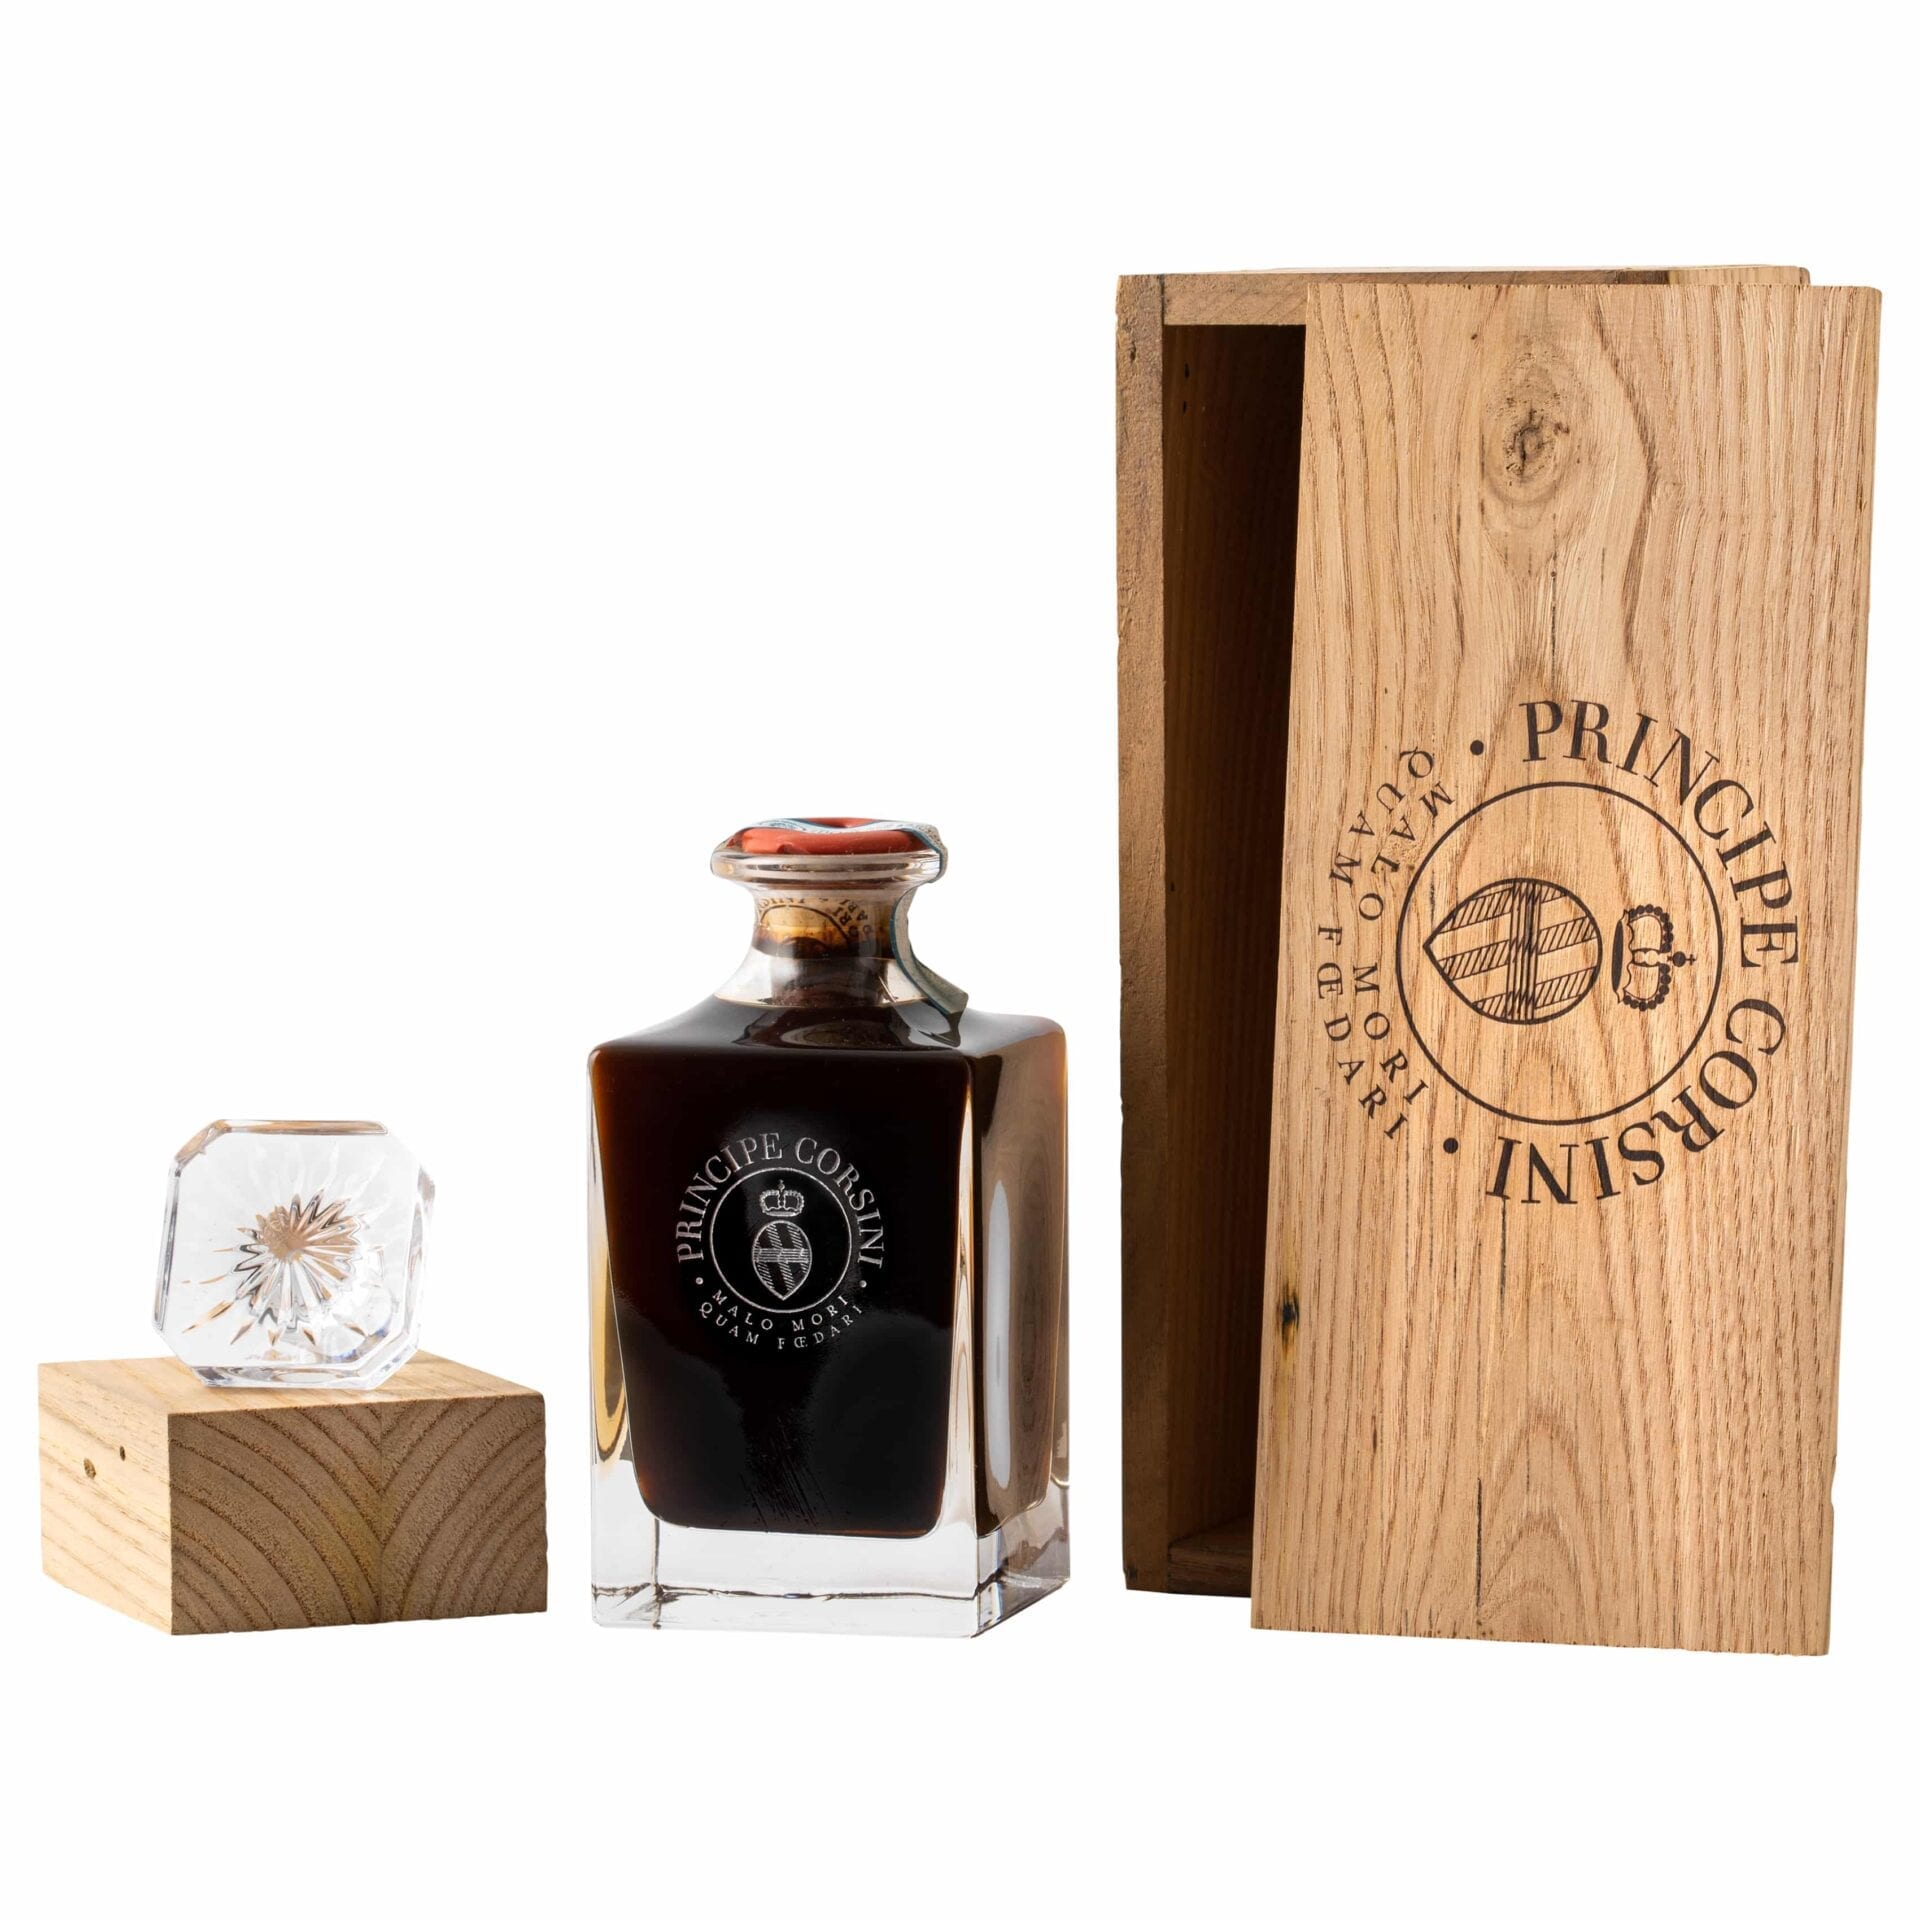 Vin Santo in crystal bottle + Wooden box